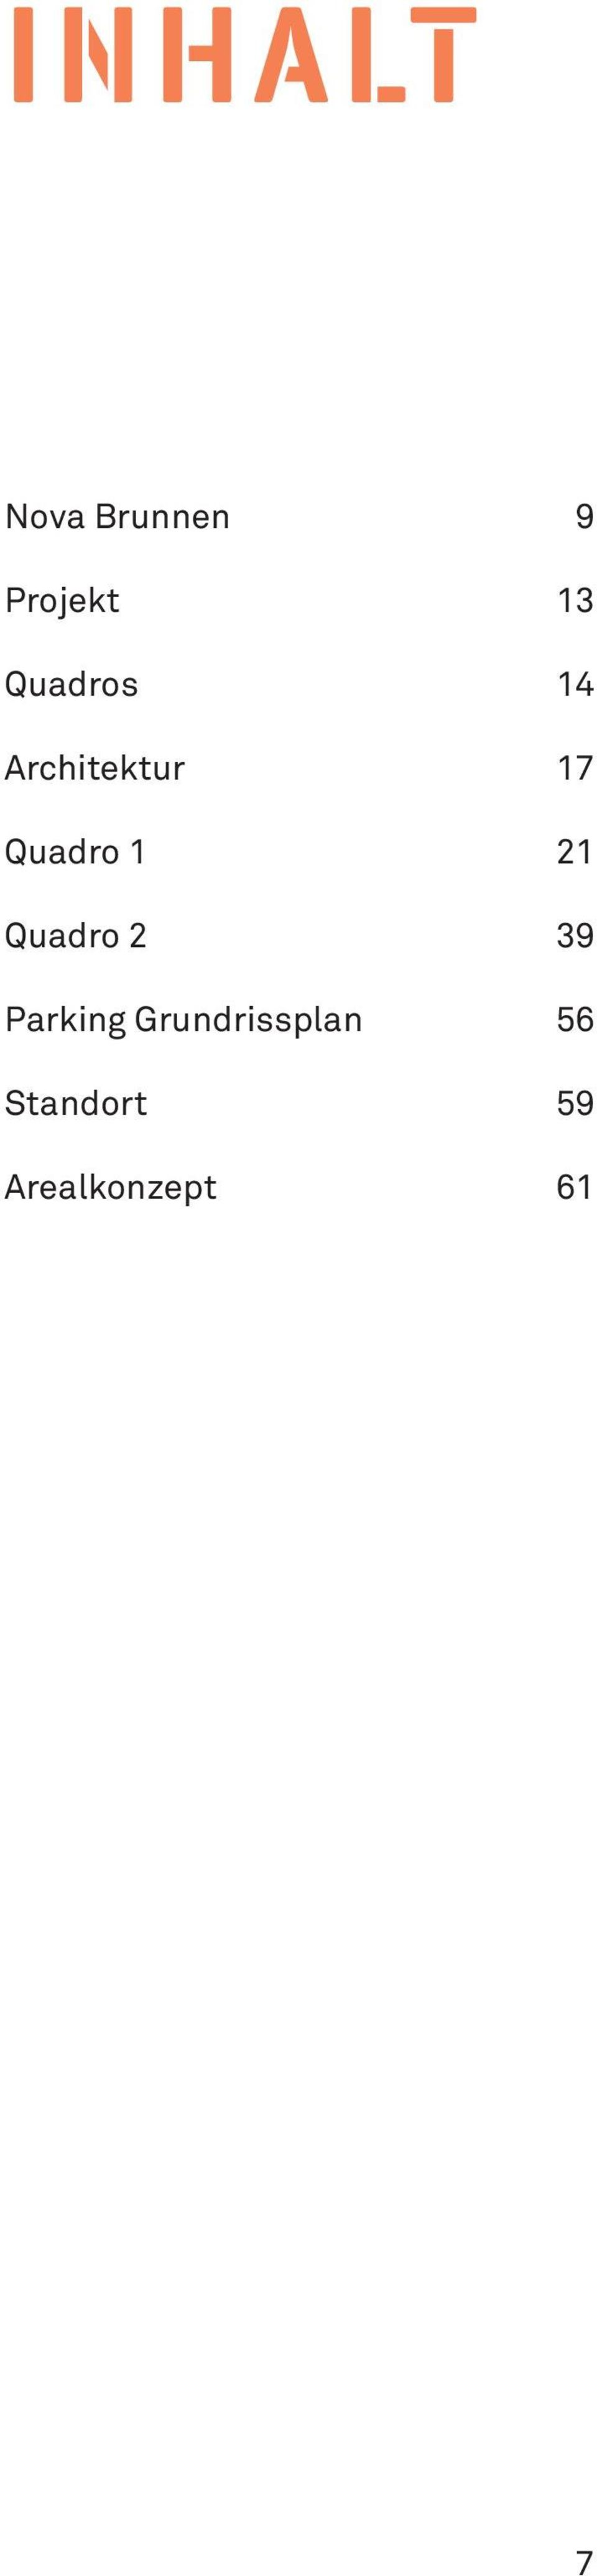 21 Quadro 2 39 Parking